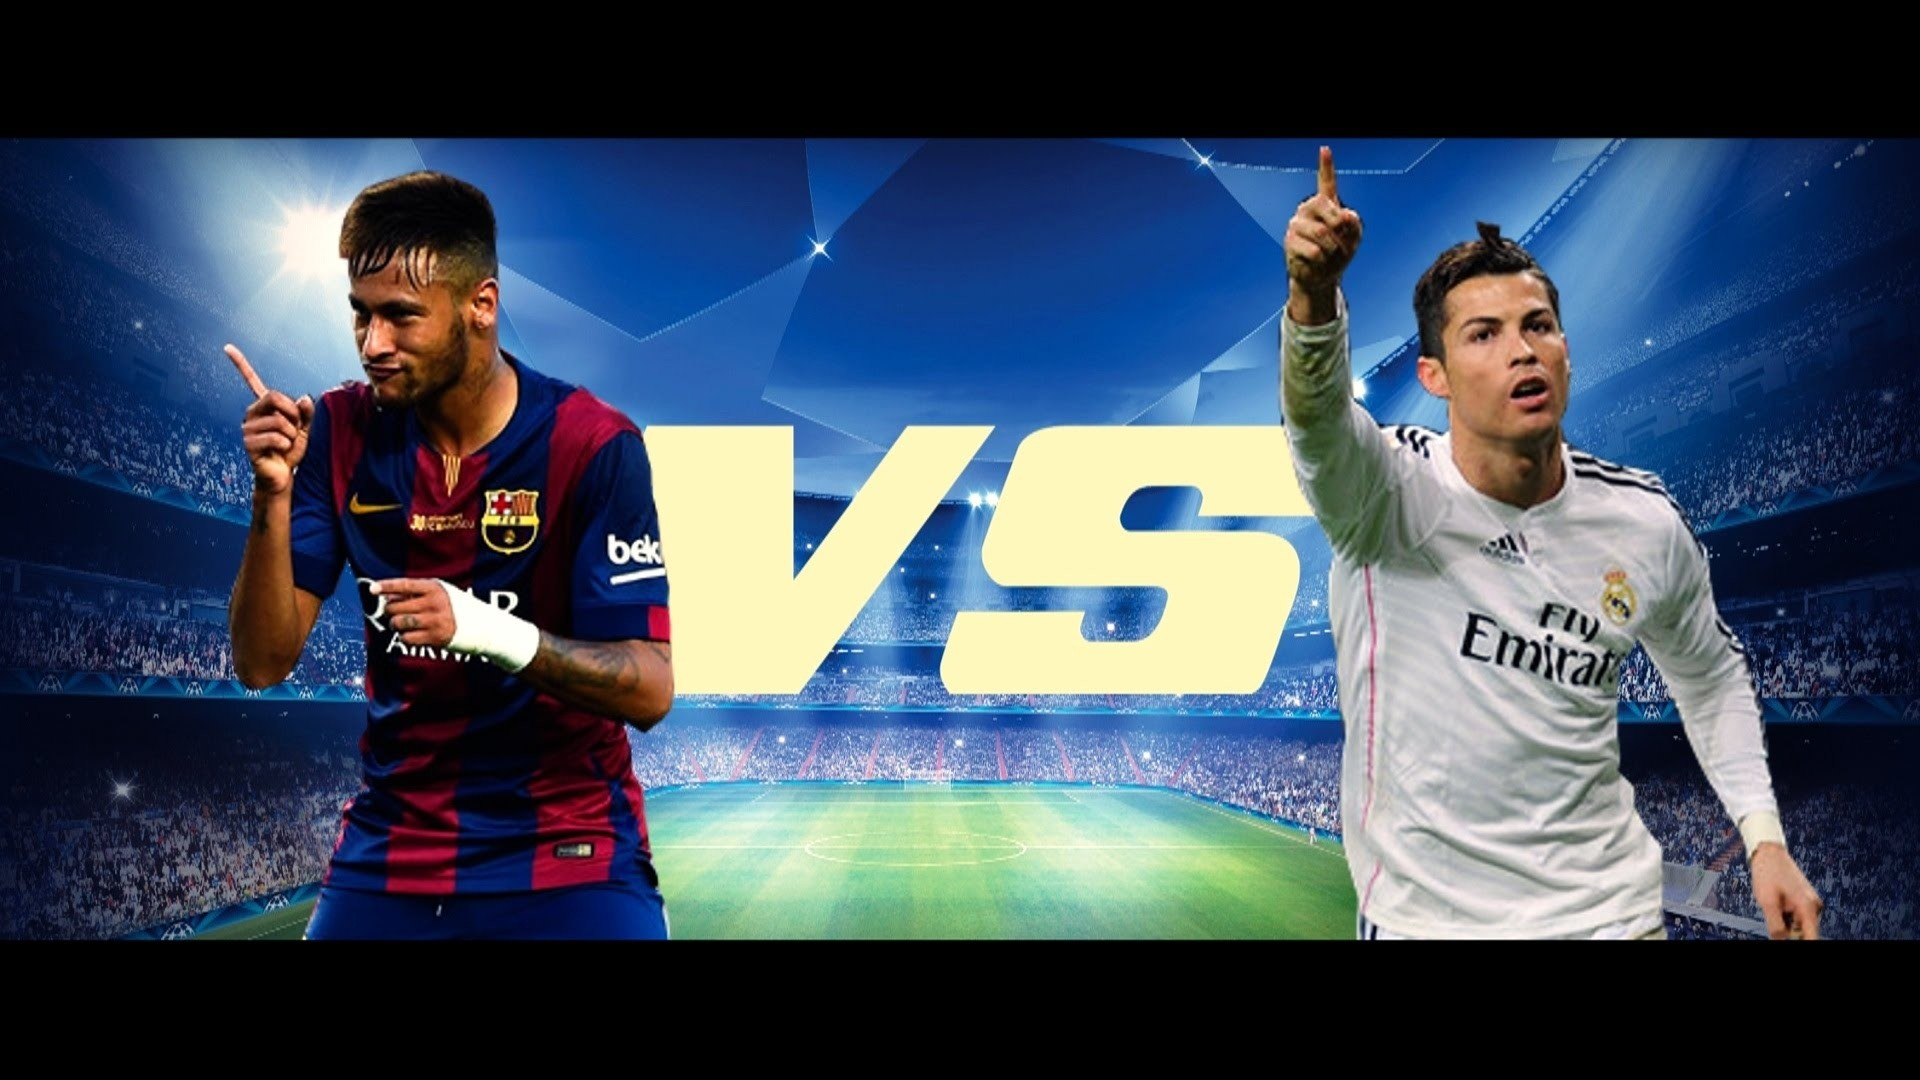 Messi vs Ronaldo Wallpaper 2018 HD (77+ images)